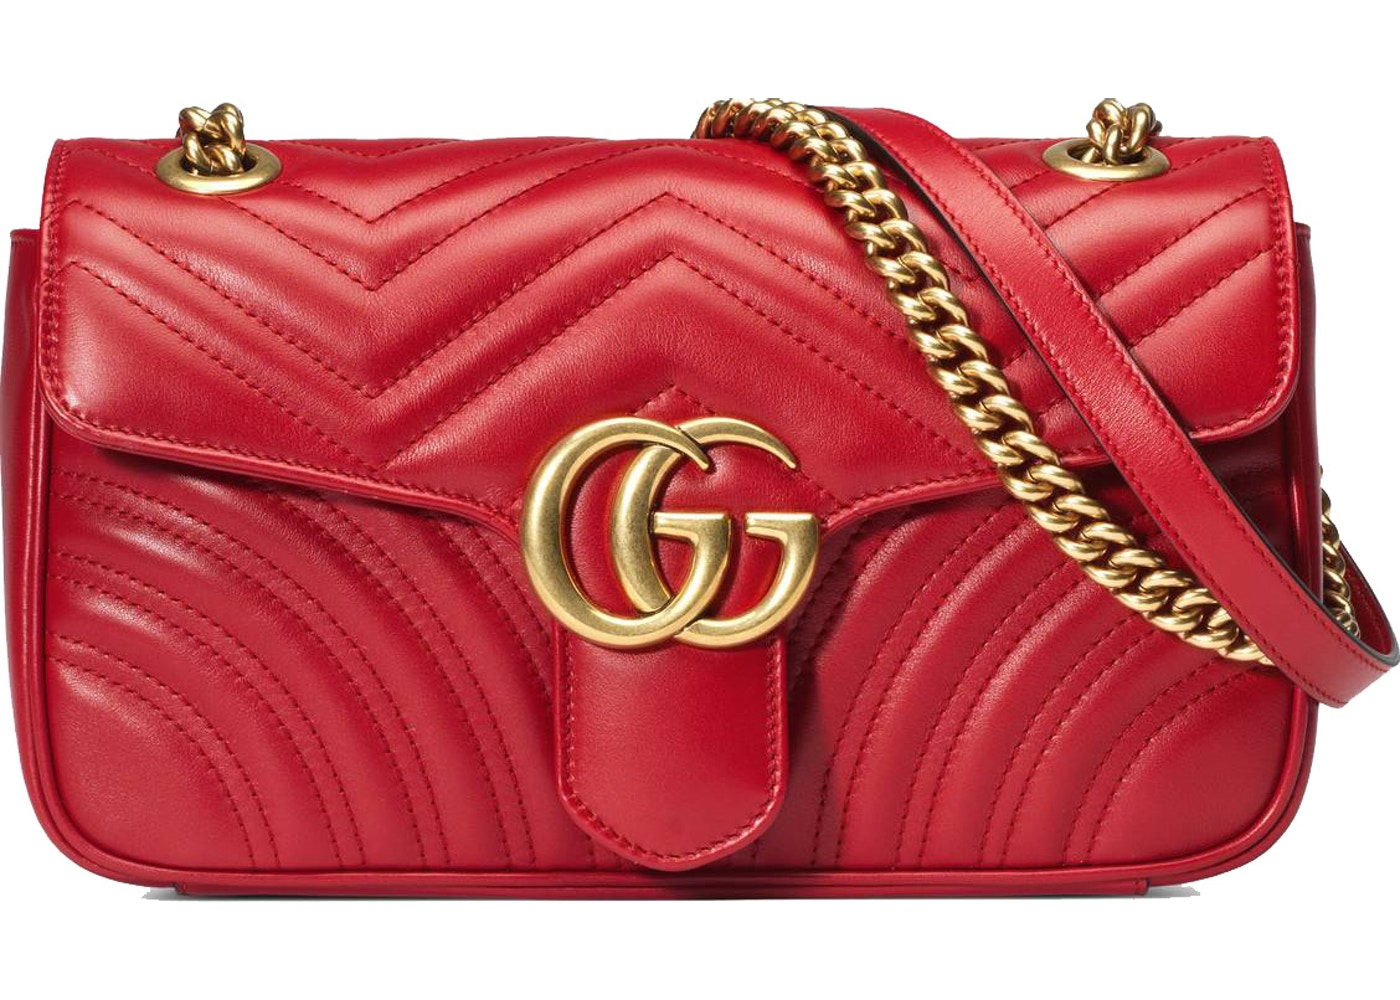 1dcfa09a456 Gucci Marmont Shoulder Bag Matelasse Small Hibiscus Red. Matelasse Small  Hibiscus Red